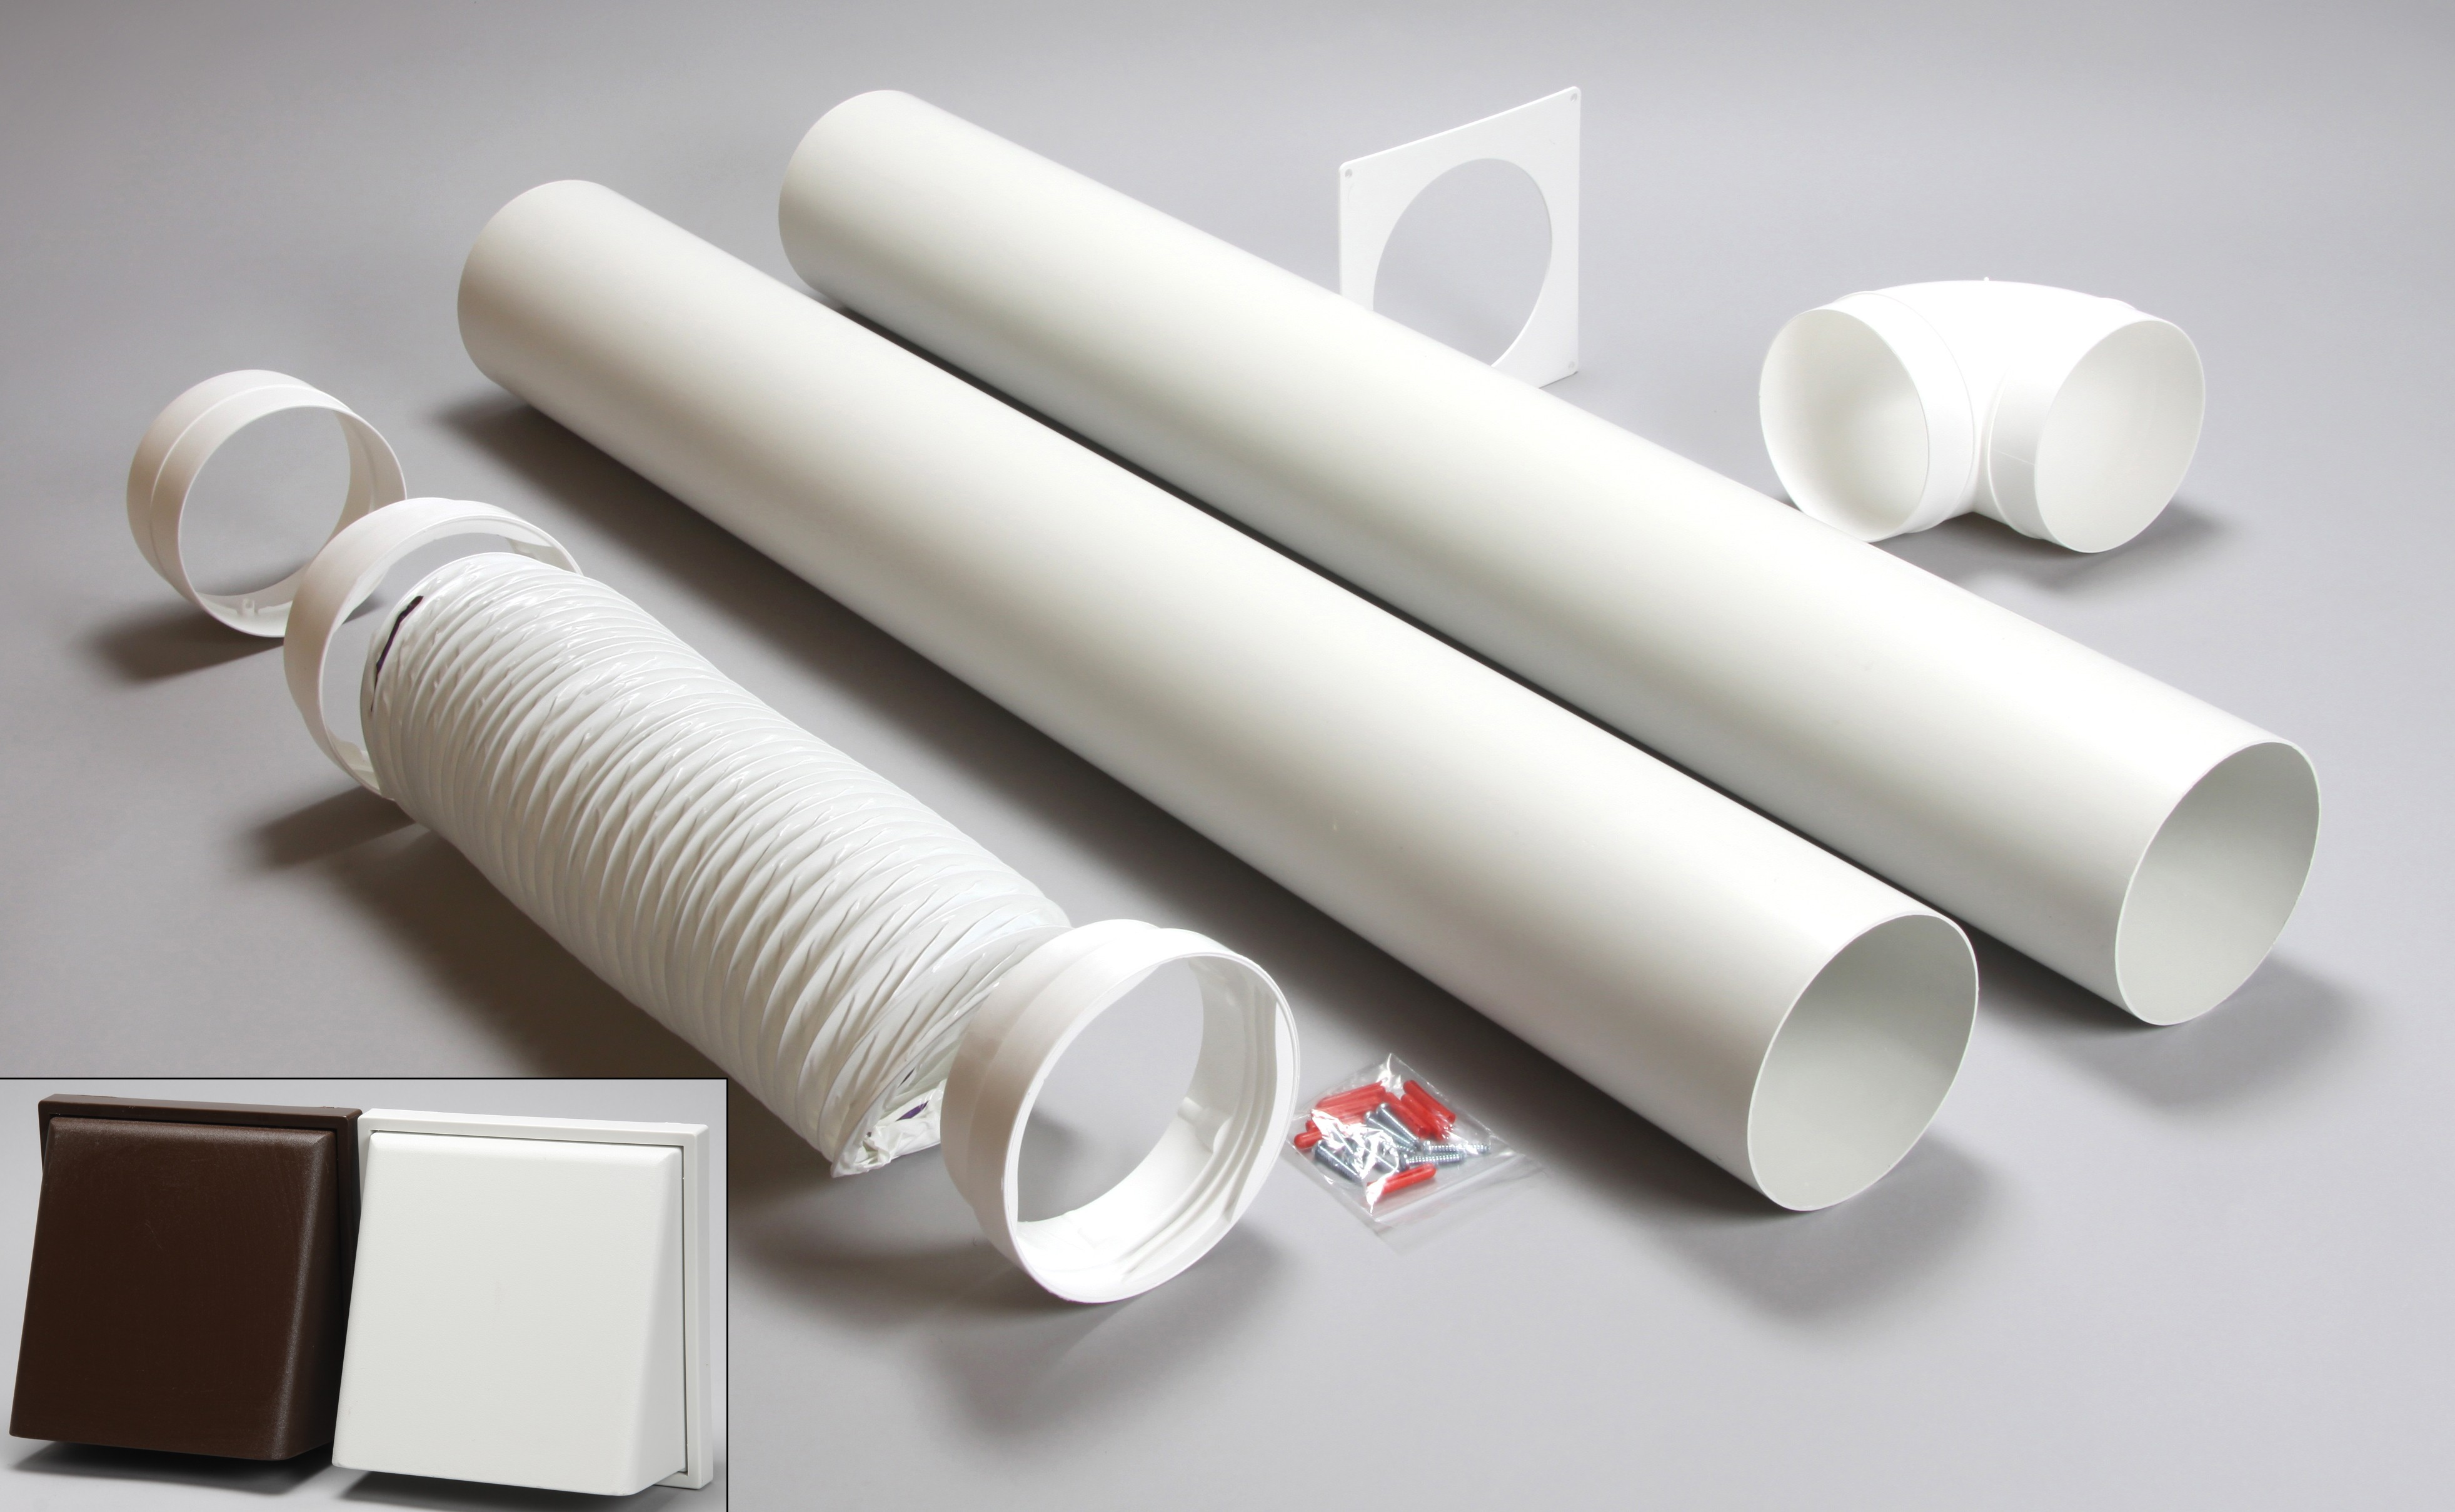 3 metre round ducting kit cowled vent white 150mm